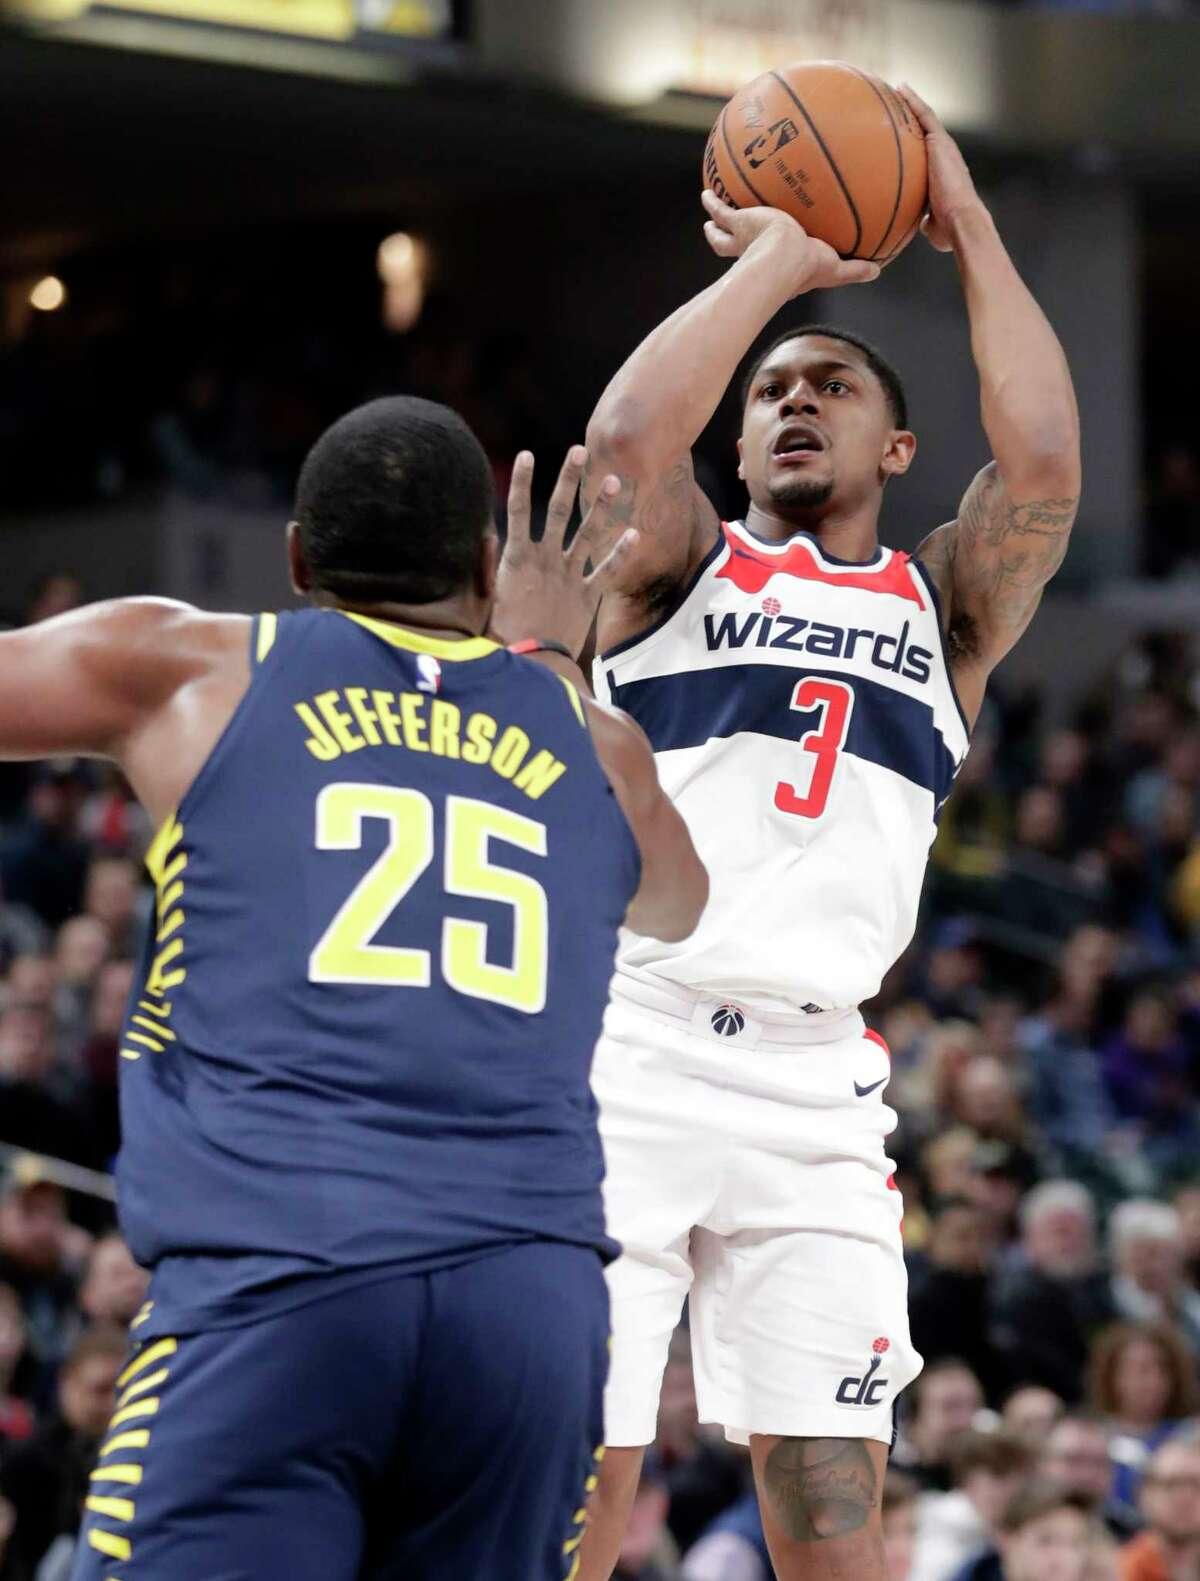 Washington Wizards guard Bradley Beal (3) shoots over Indiana Pacers center Al Jefferson (25) during the first half of an NBA basketball game in Indianapolis, Monday, Feb. 5, 2018. (AP Photo/Michael Conroy)